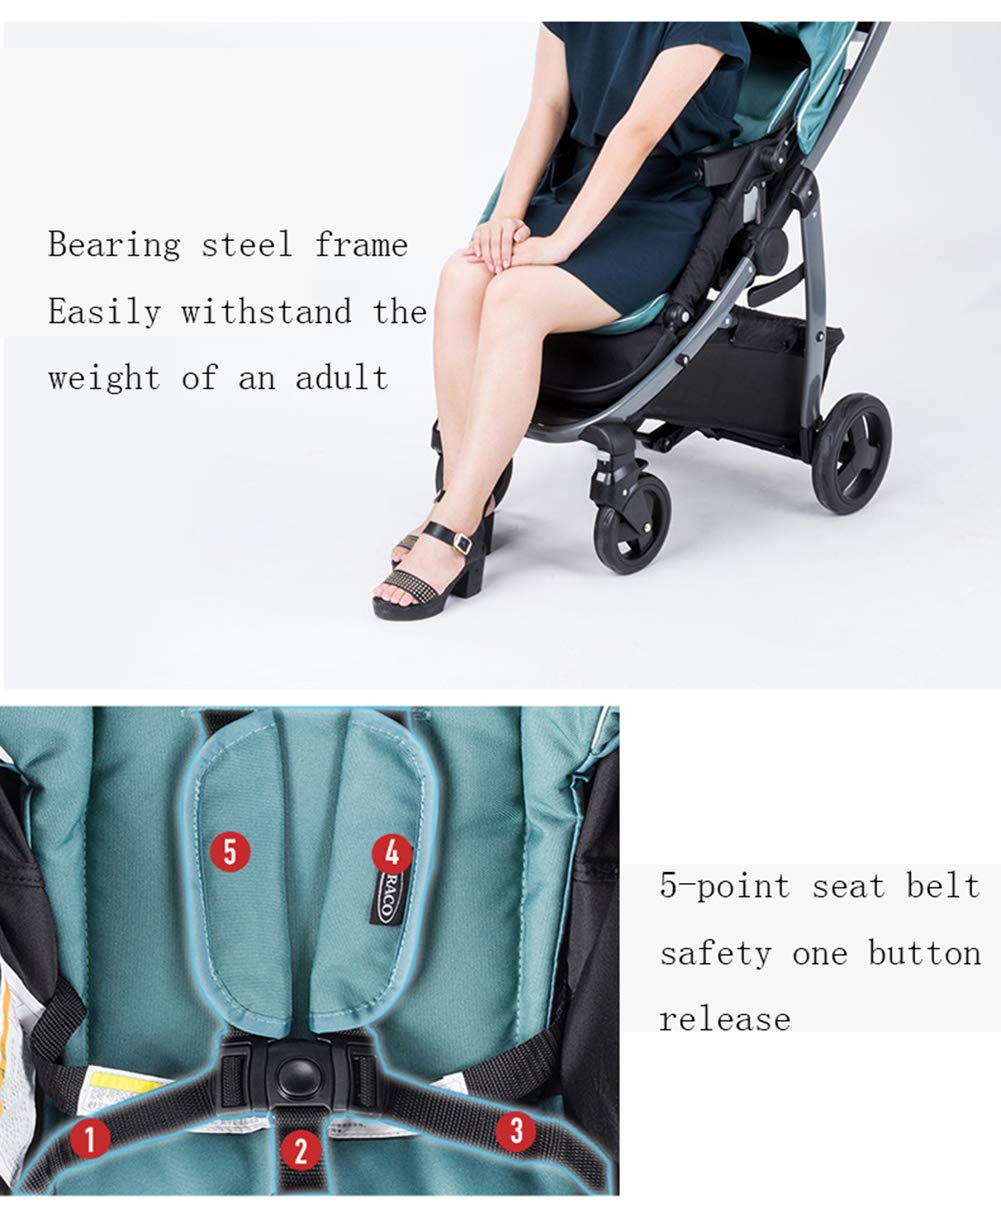 XUE Baby Stroller, Spacious High Landscape Trolley Shock Absorber Can Sit Reclining With Basket Travel System With Embrace XUE ∵ Wipeable and washable design for easier cleaning. ∵ Convertible high chair becomes booster and toddler seat. ∵ Keeps little ones secure with 3-point and 5-point harnesses. 4